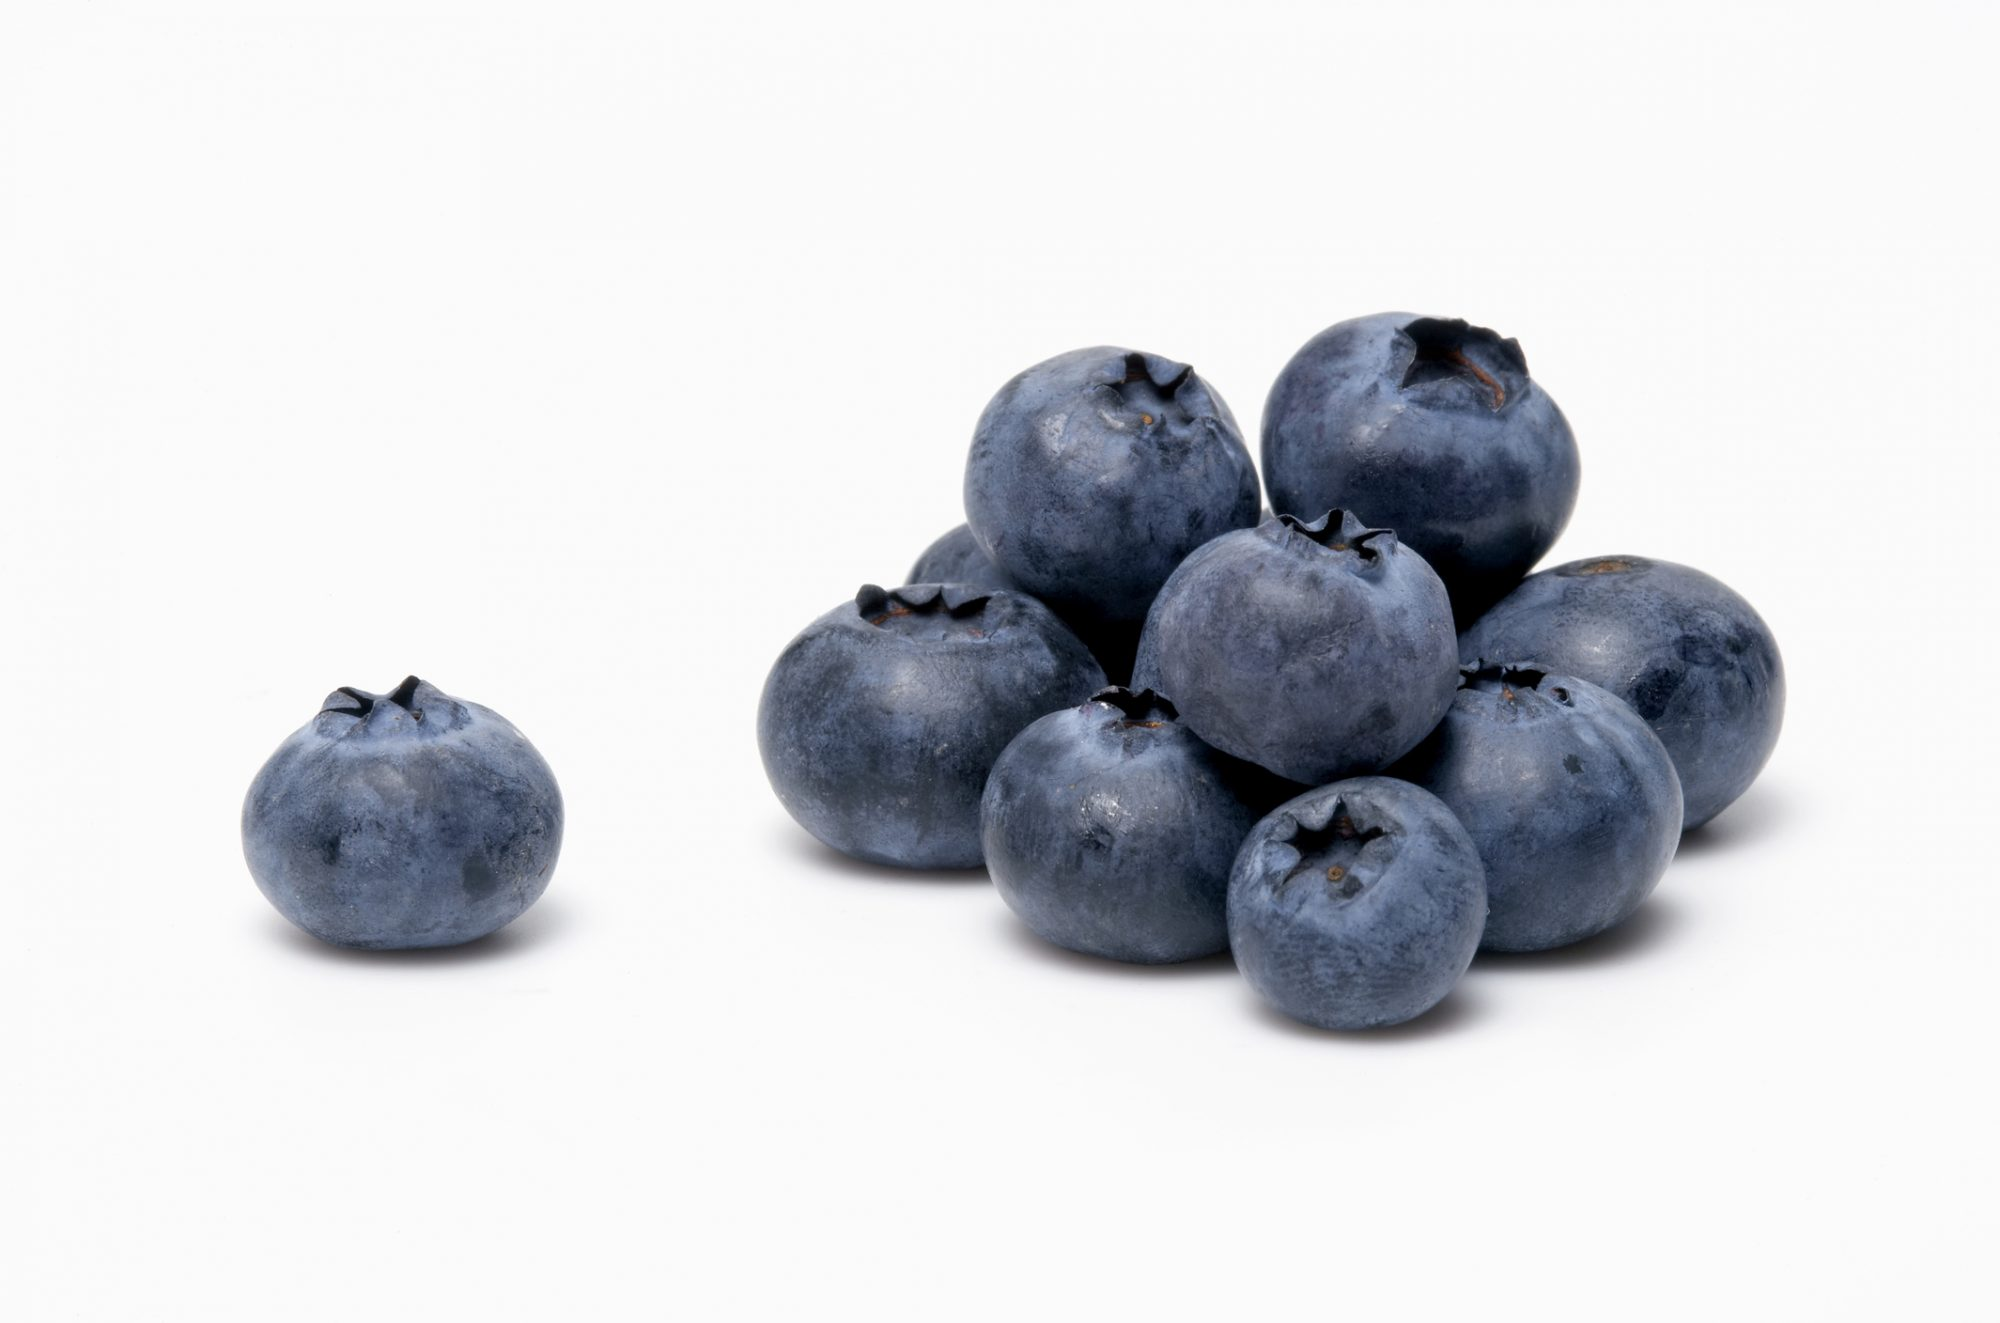 getty-blueberry-image